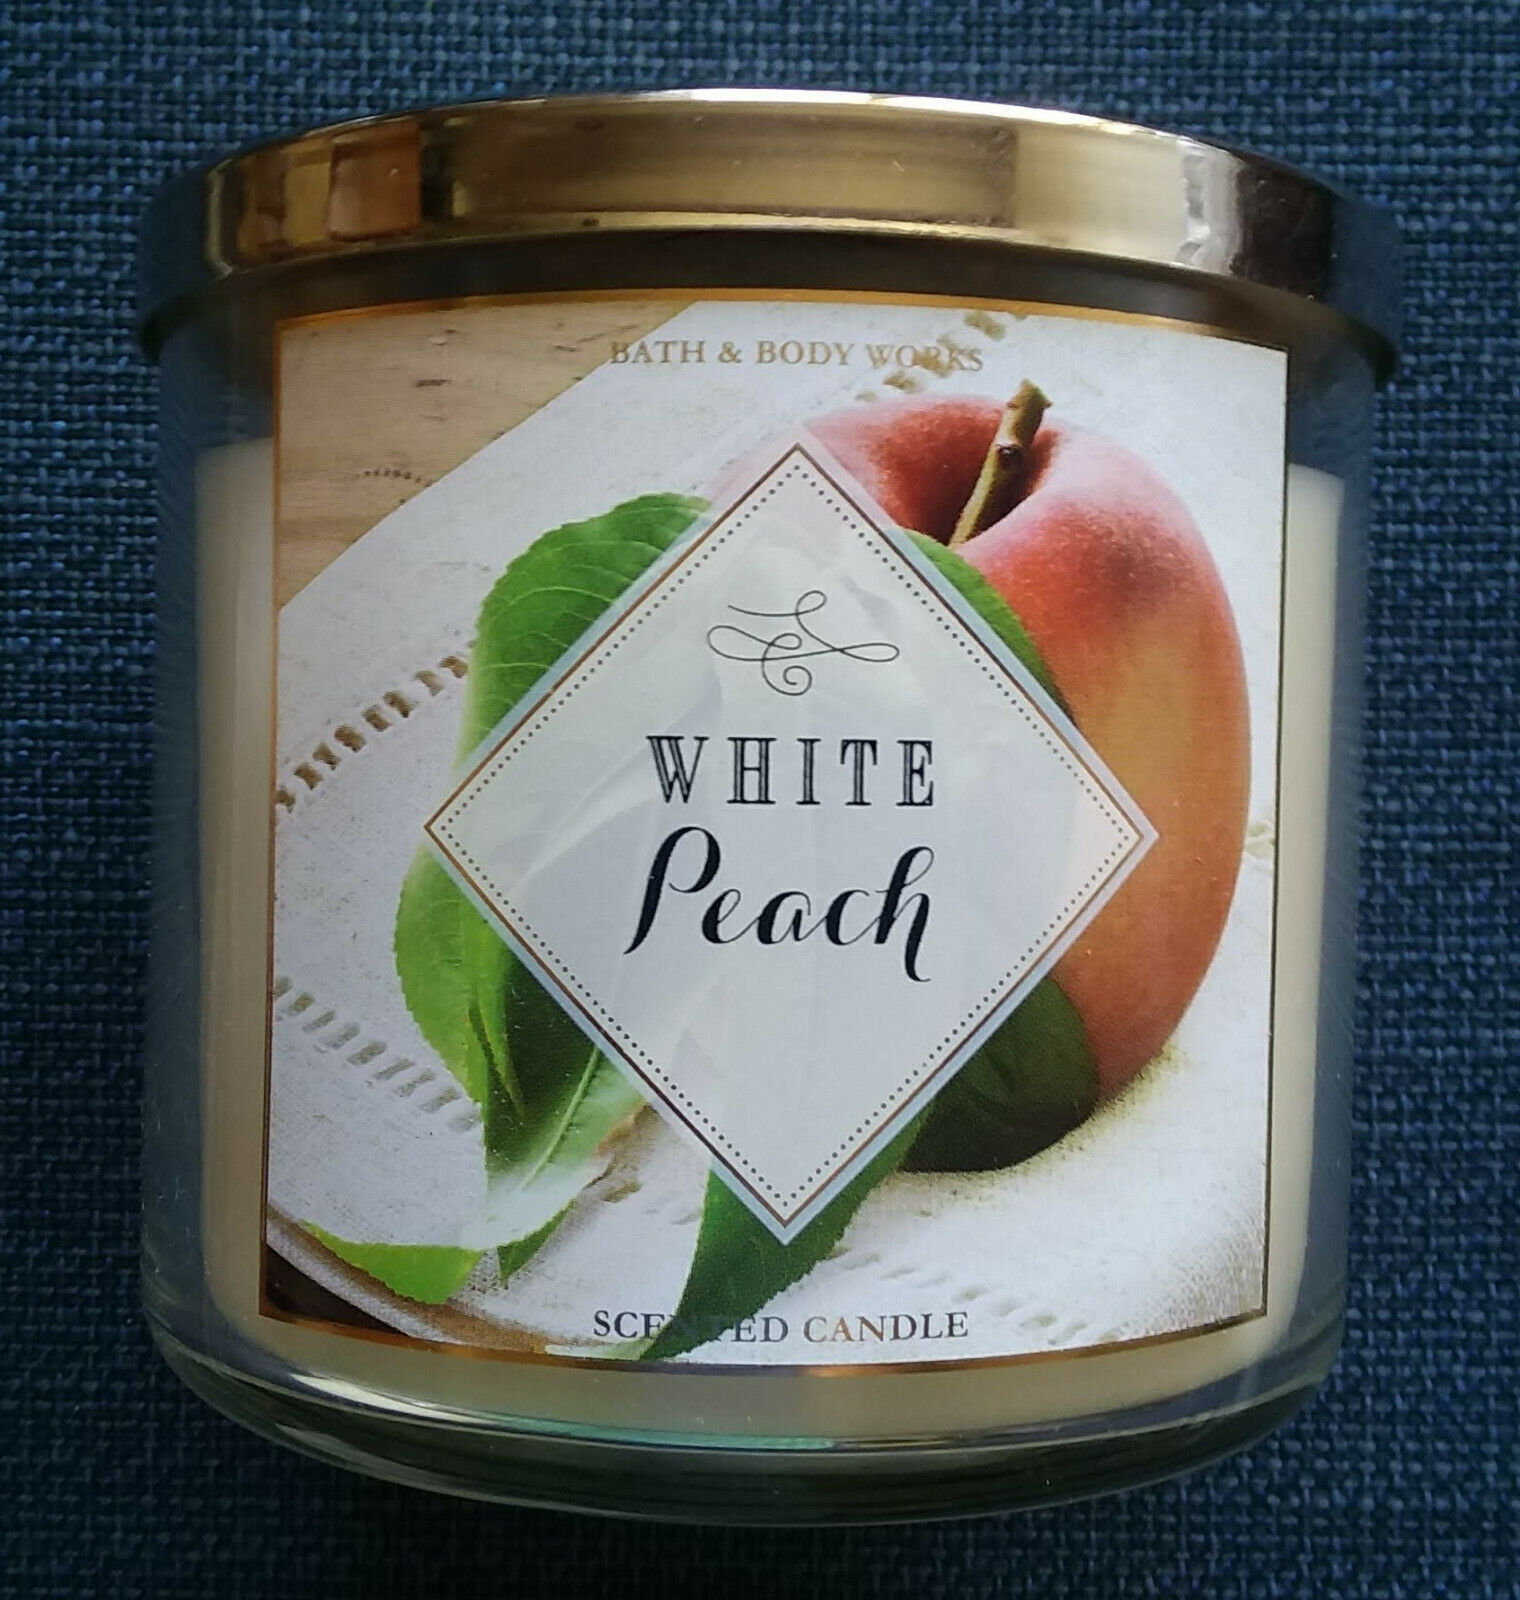 Bath and Body Works White Peach Scented Candle 3 Wick 14.5 Oz White Fruit